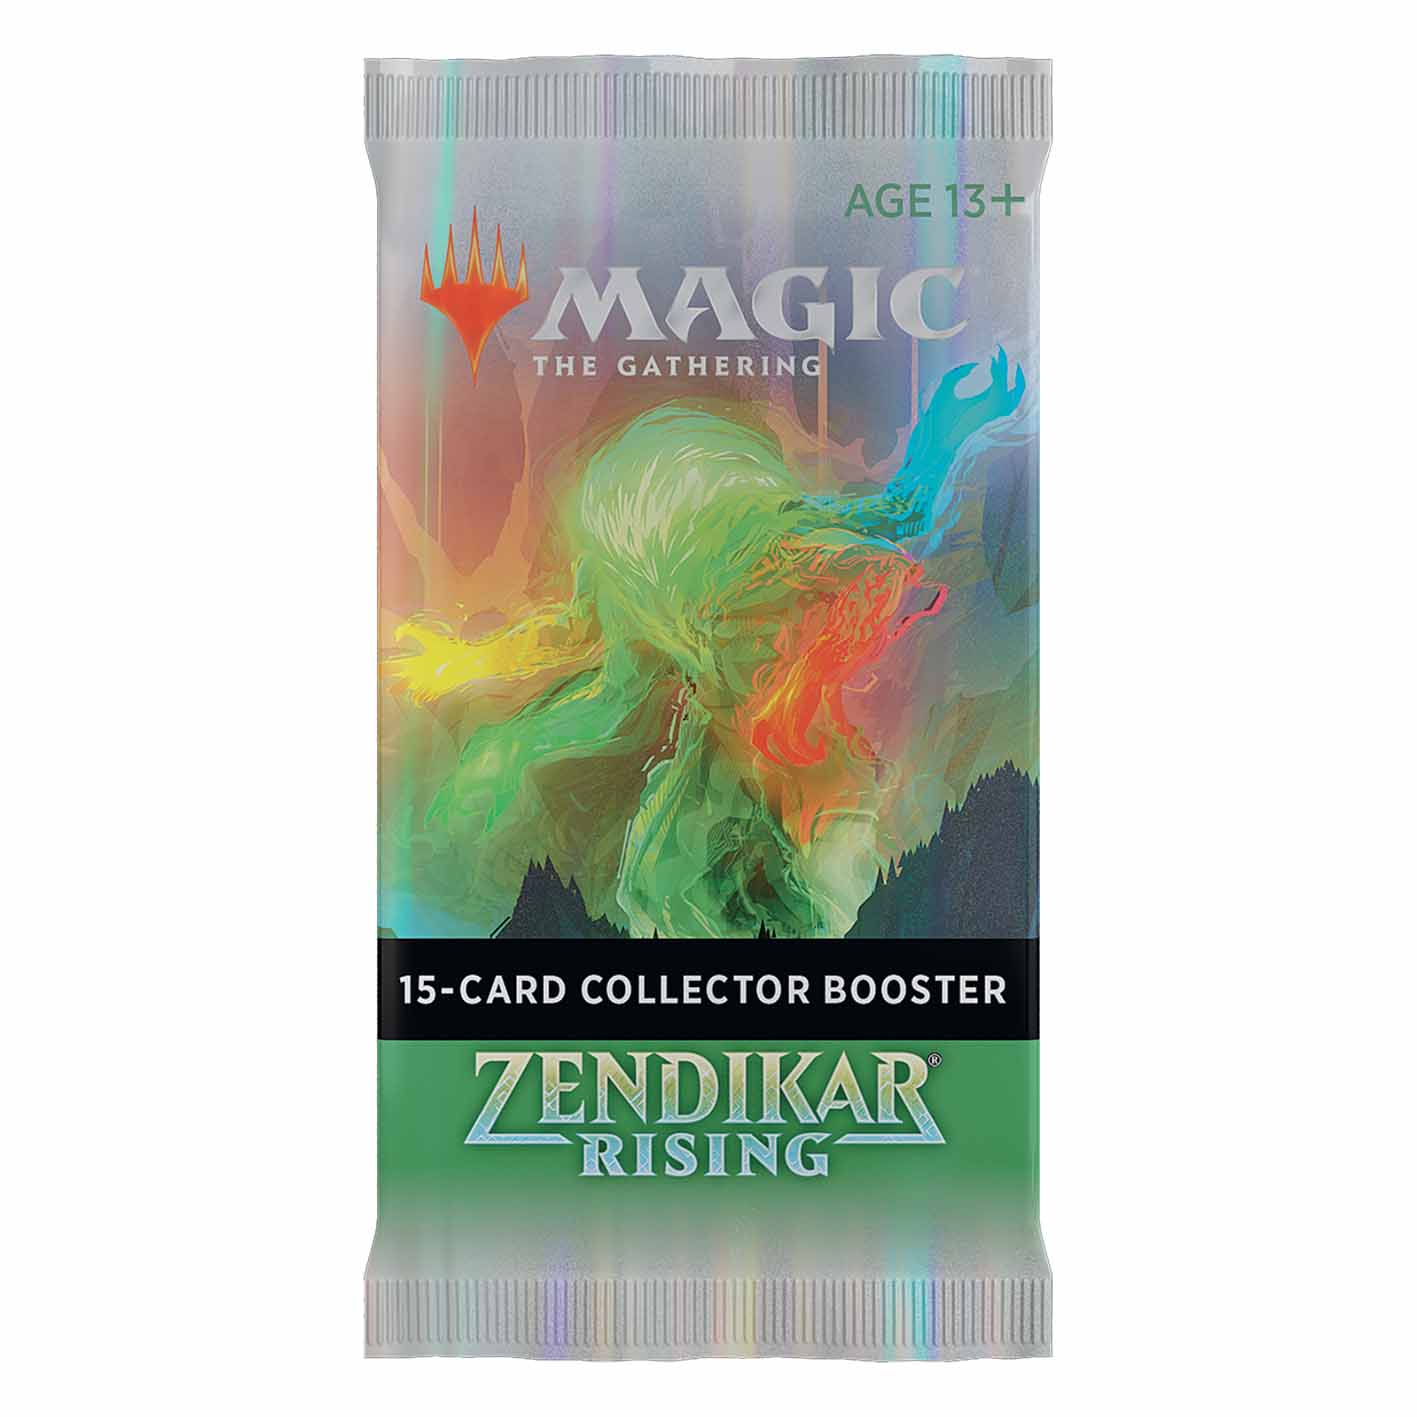 Boite de Collector Booster Zendikar Rising